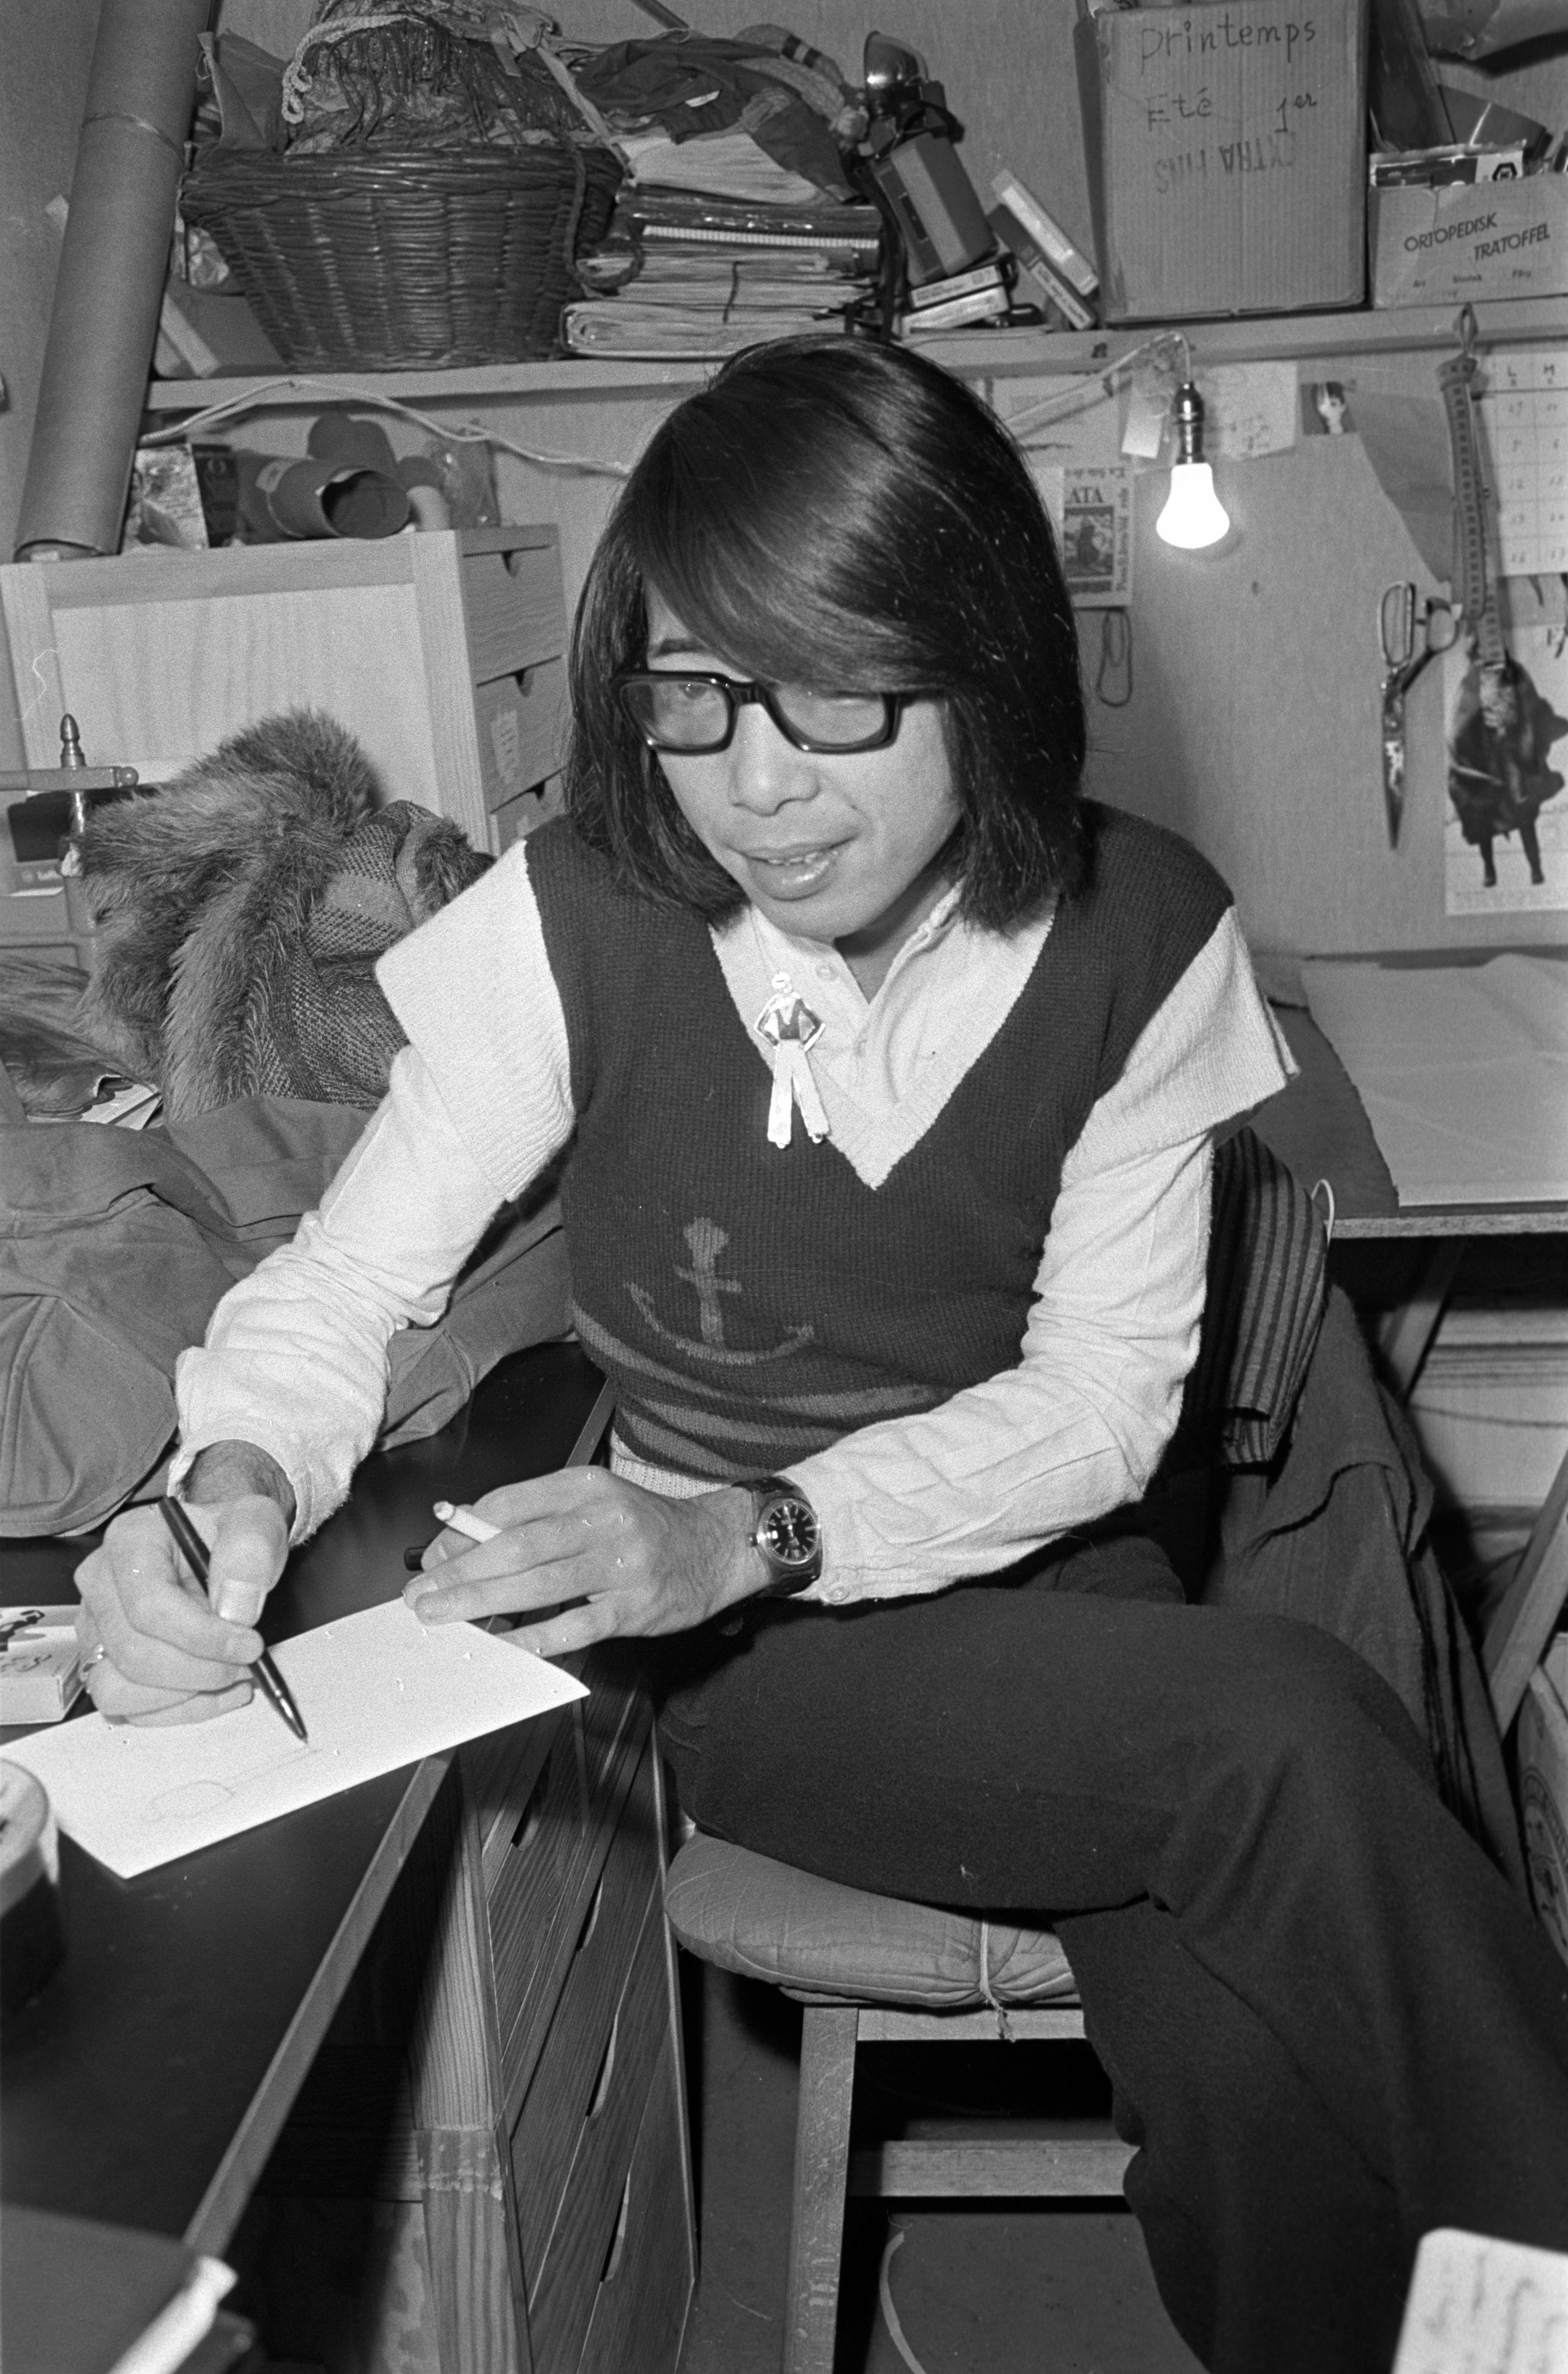 Kenzo Takada in the his atelier, 1971.